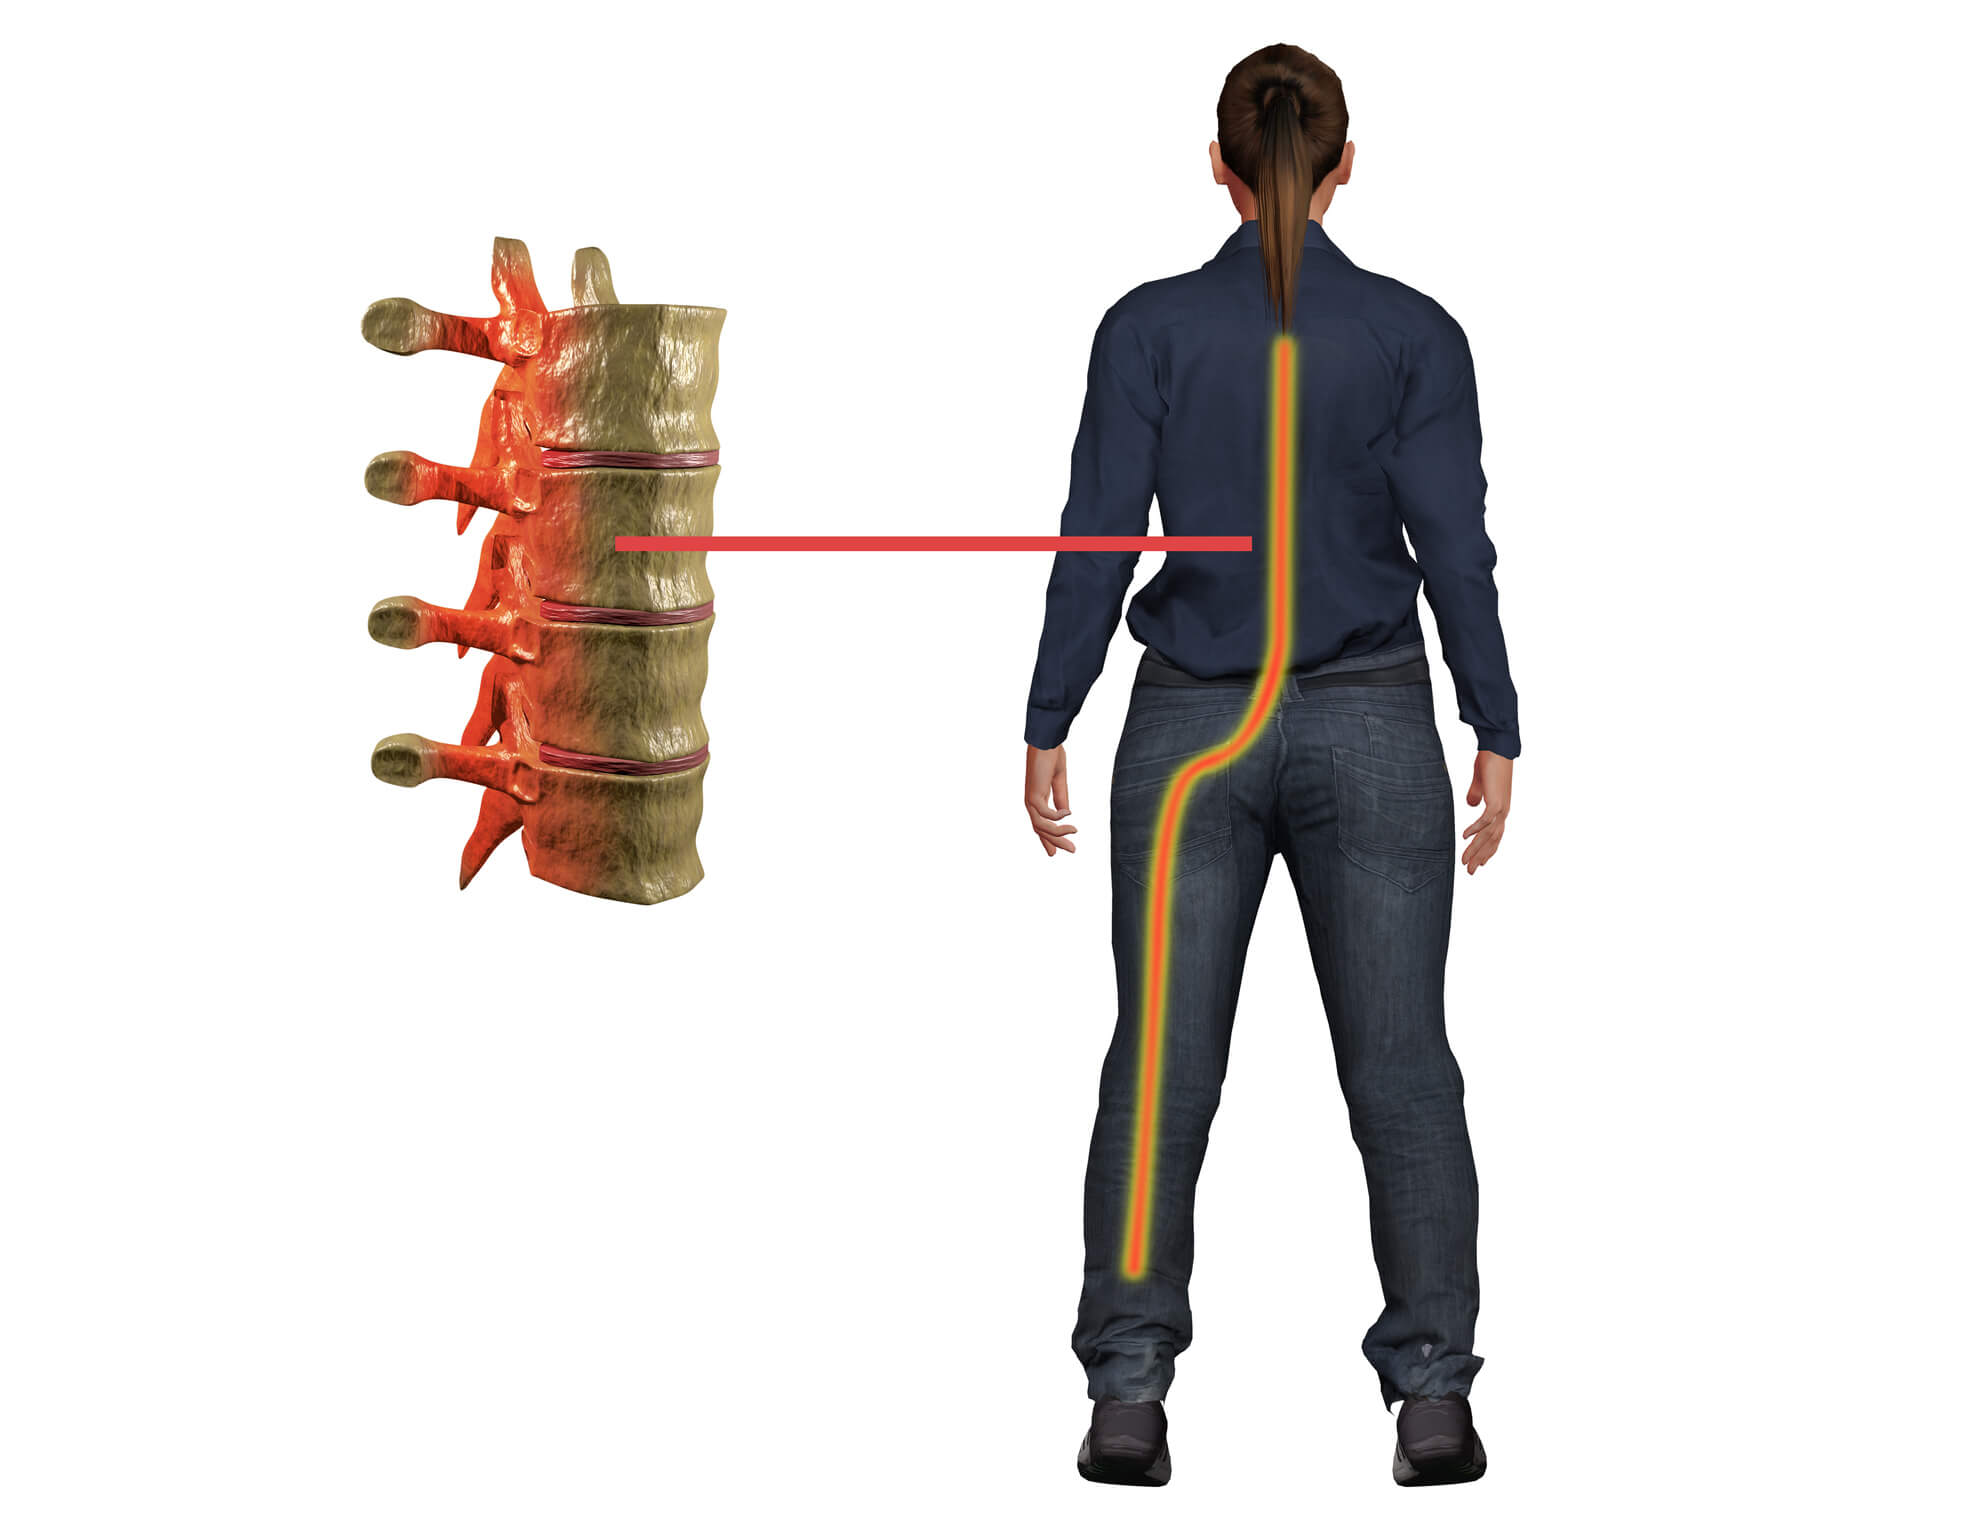 treat your sciatica pain with experienced chiropractors in midland michigan